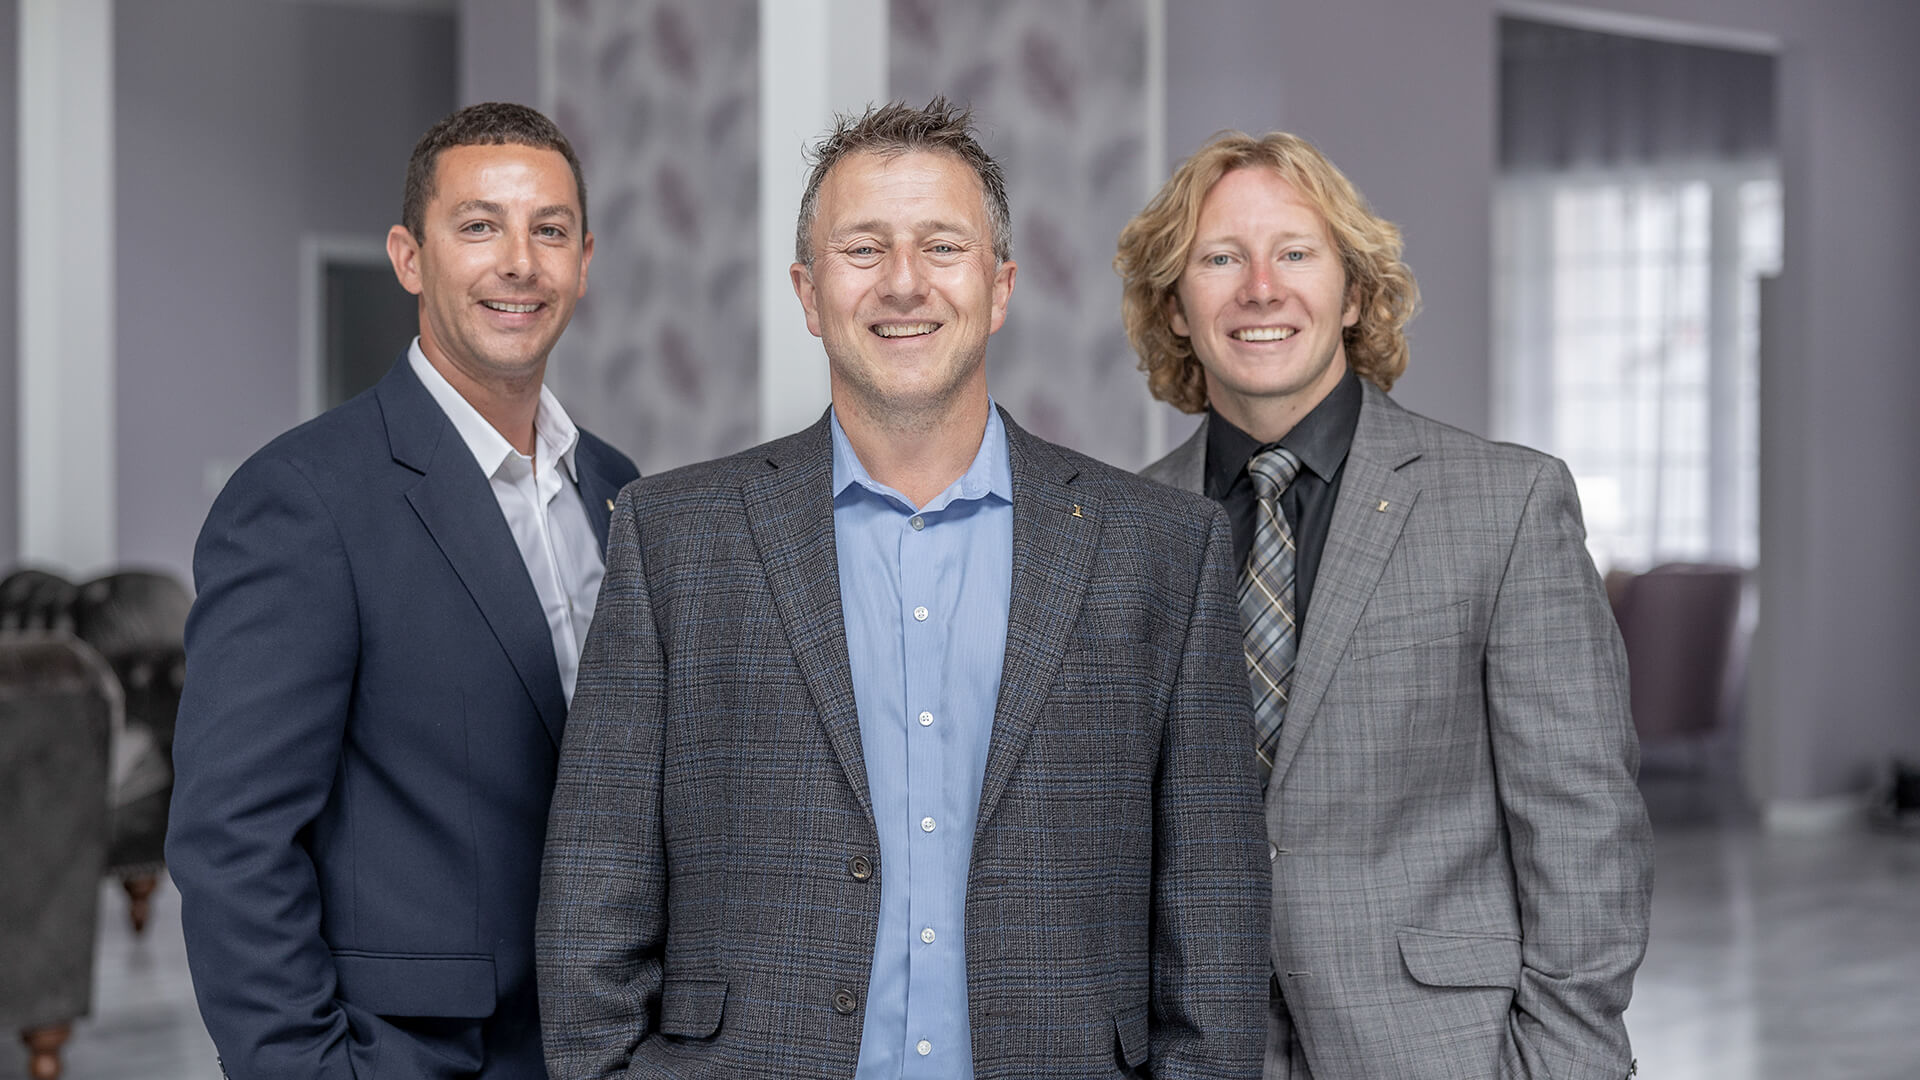 Integrity Grows Network in Upstate New York by Adding Michael O'Brien Insurance Agency